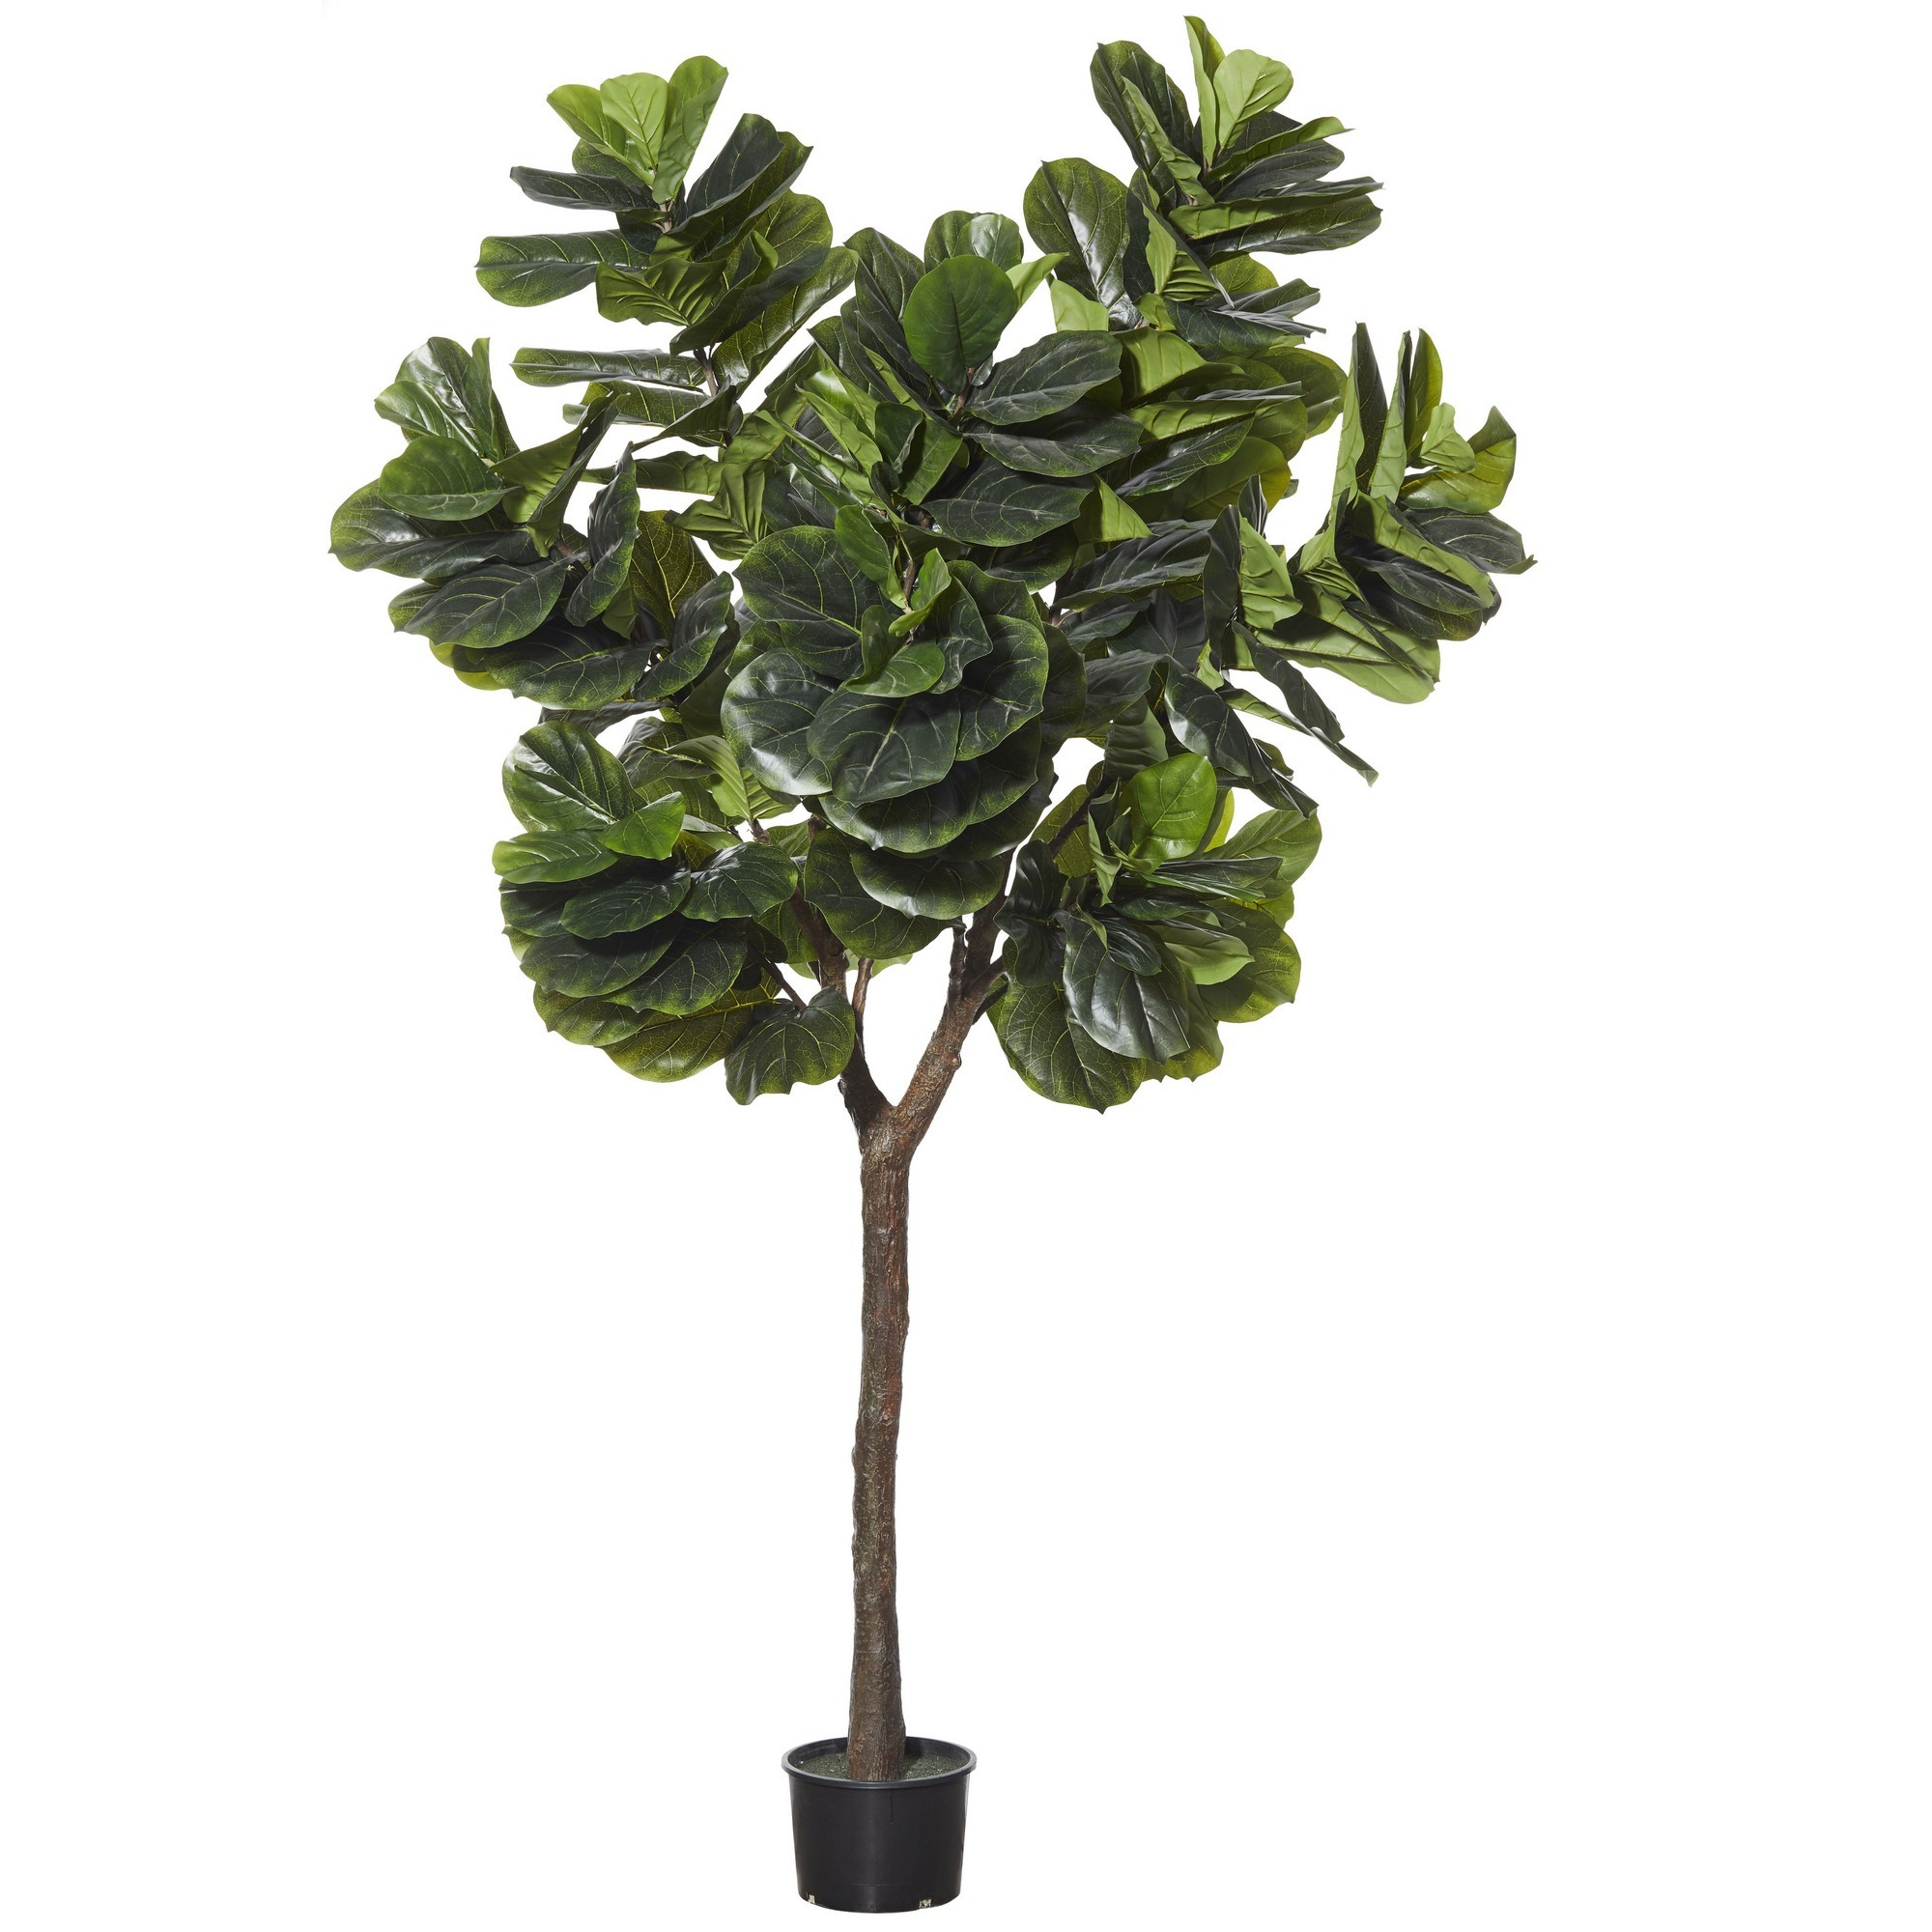 Potted Artificial Giant Fiddle Tree, 300cm